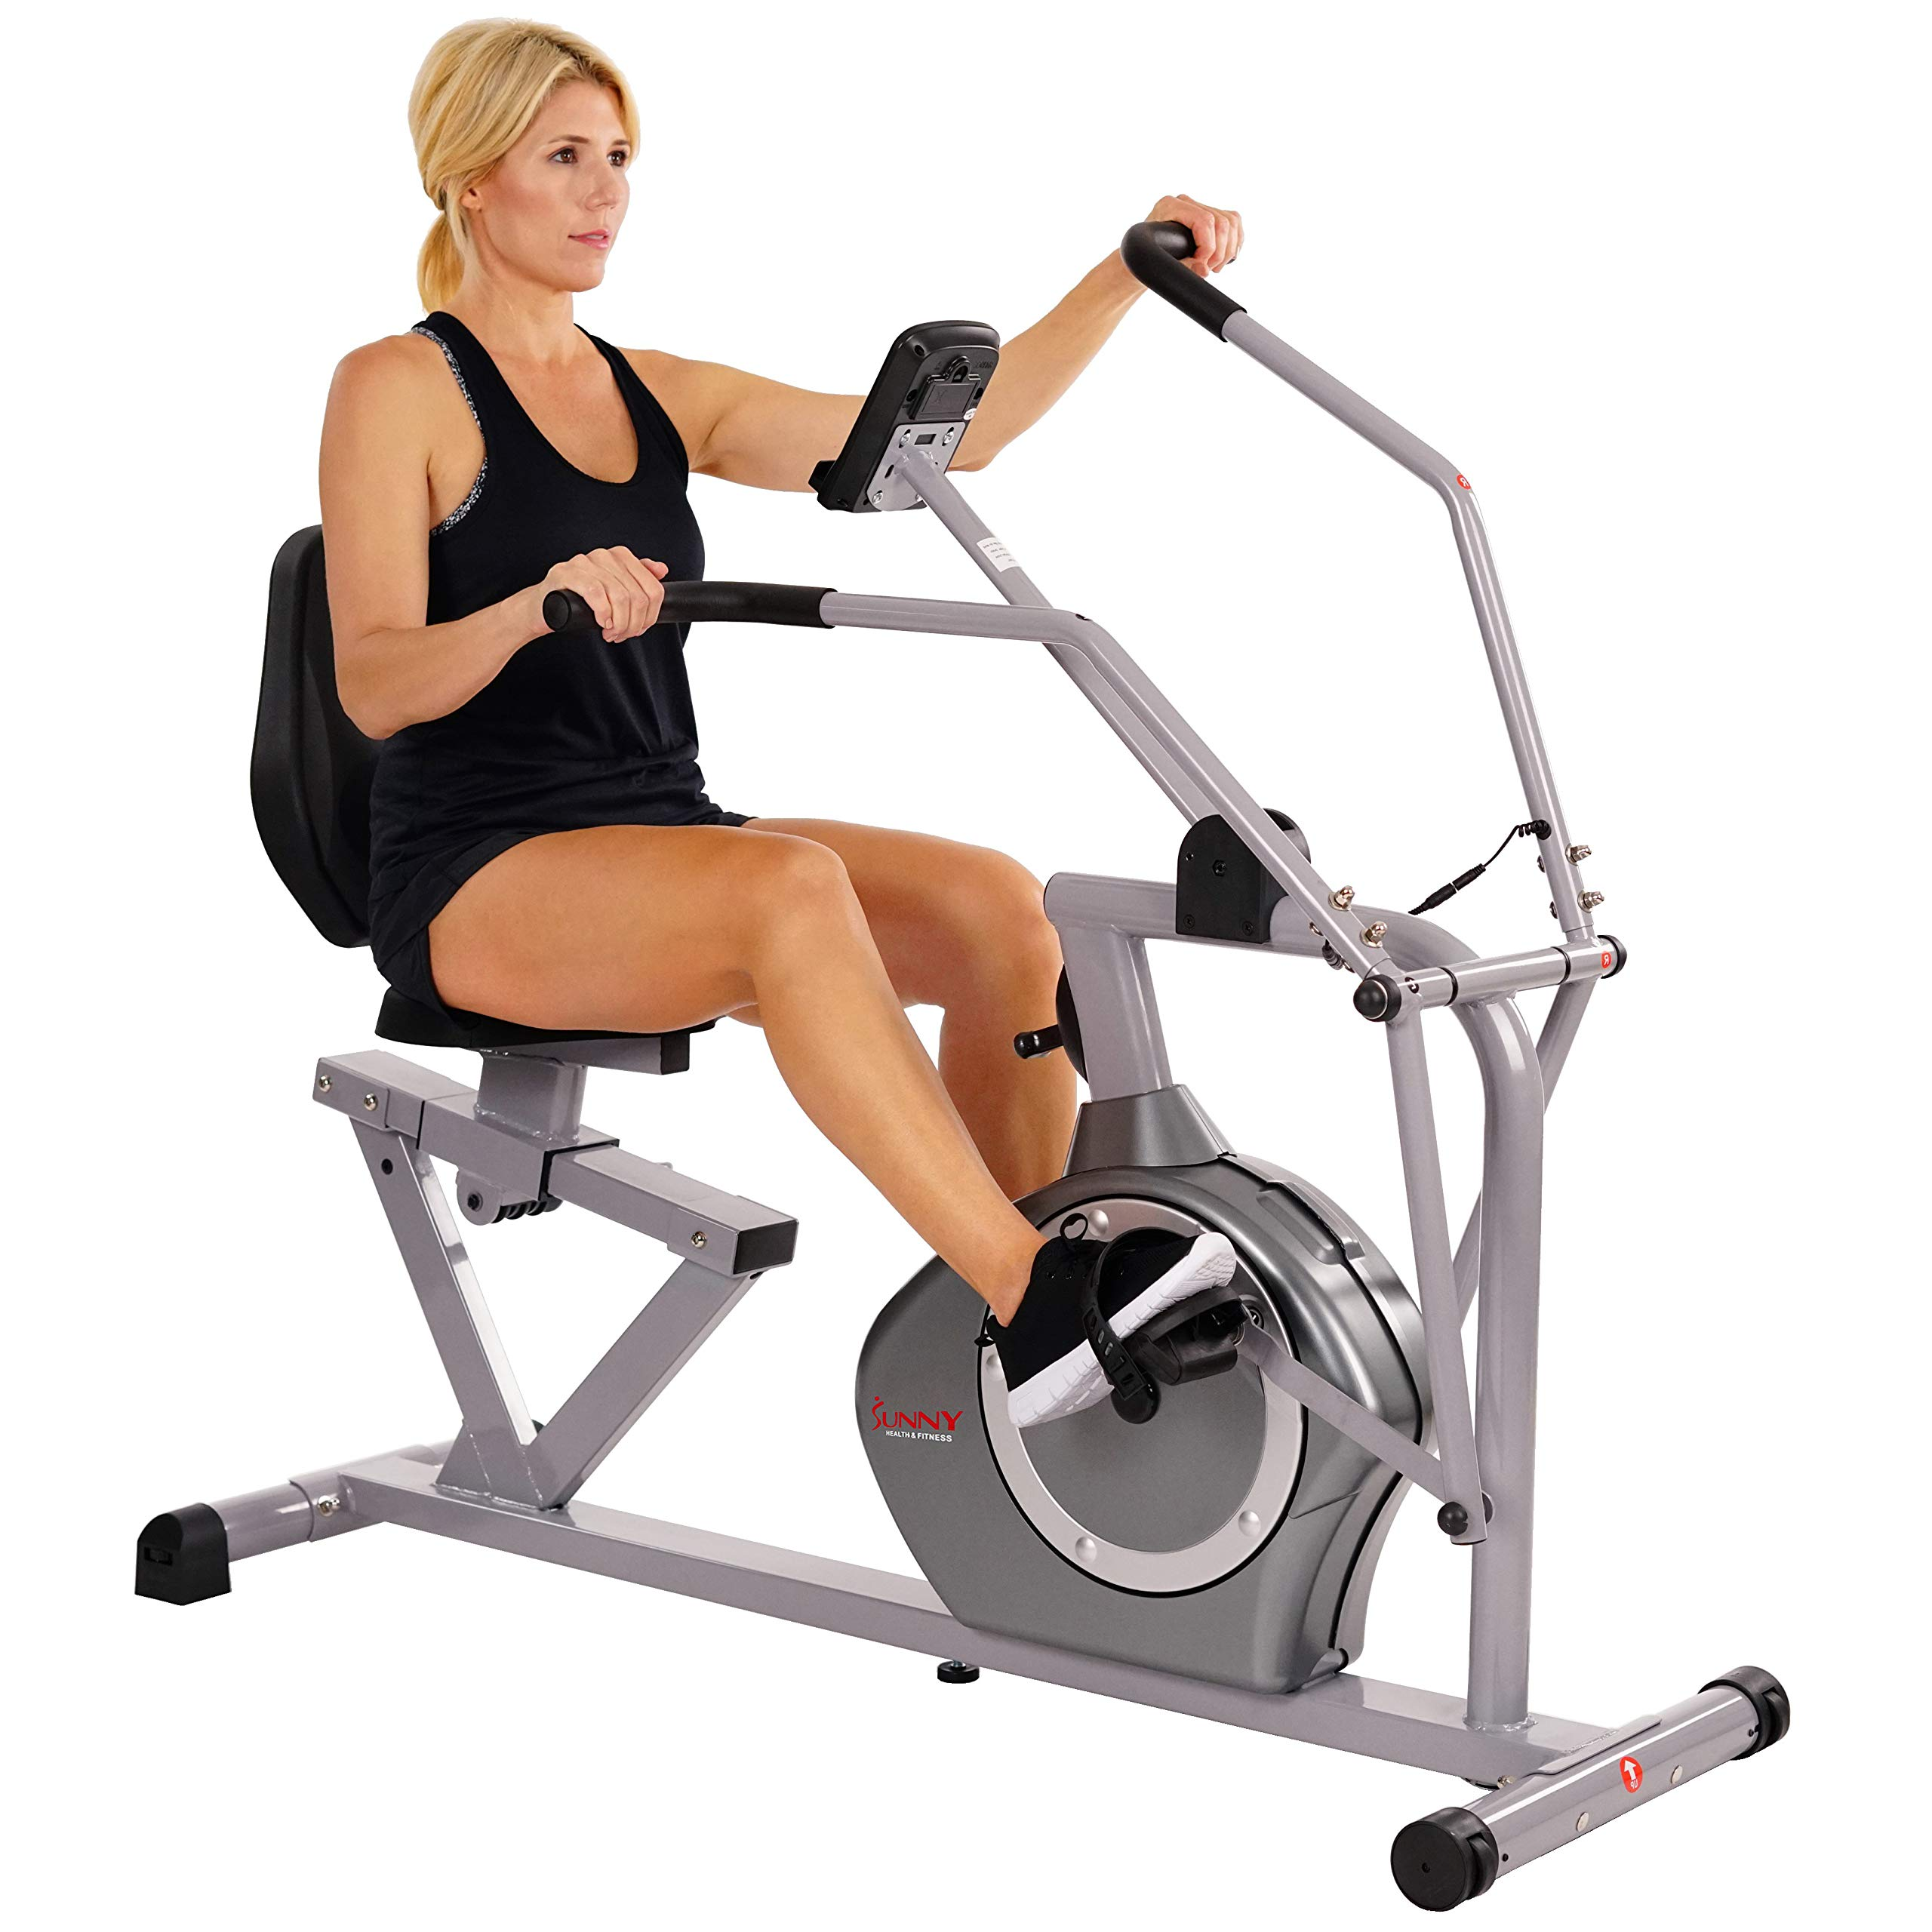 Sunny Health & Fitness Magnetic Recumbent Exercise Bike, 350lb High Weight Capacity, Cross Training, Arm Exercisers…